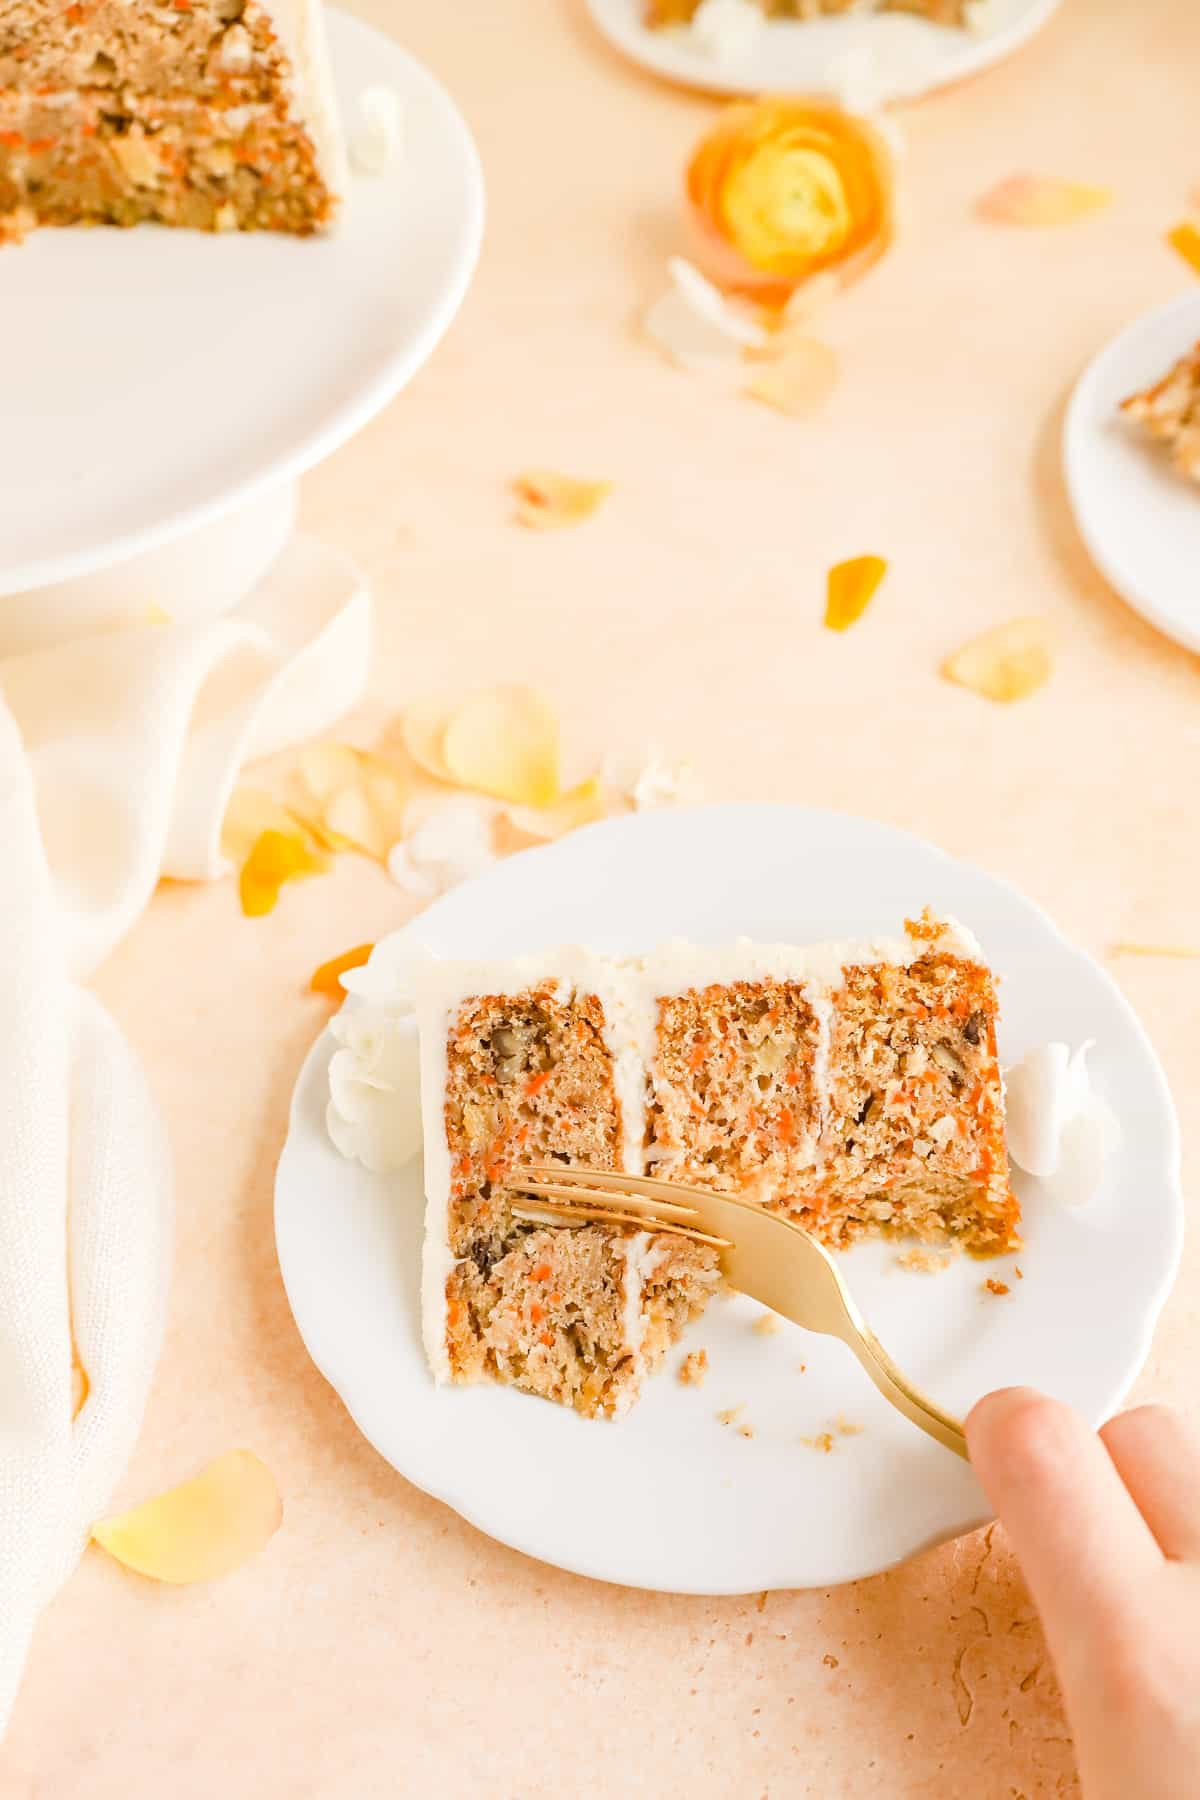 a hand using a fork to take a bite out of a piece of carrot cake.